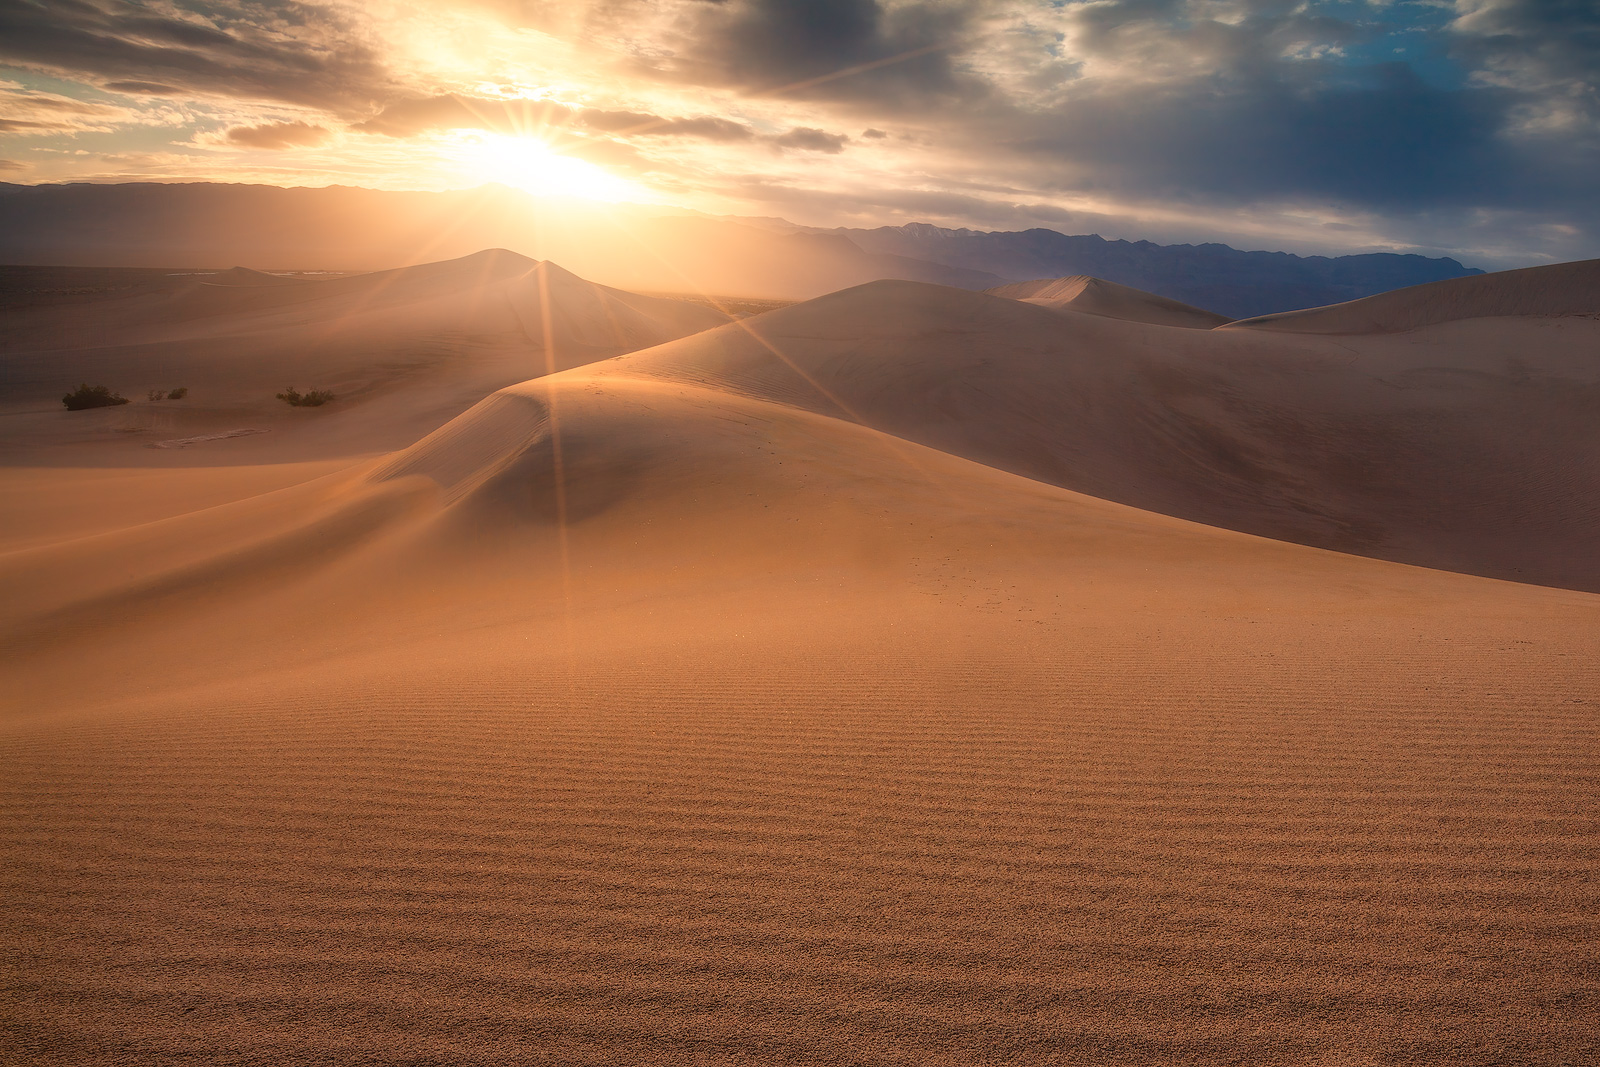 america,california,death valley,death valley national park,dune,dunes,evening,mesquite dunes,north america,sunset,united states,us,usa,west